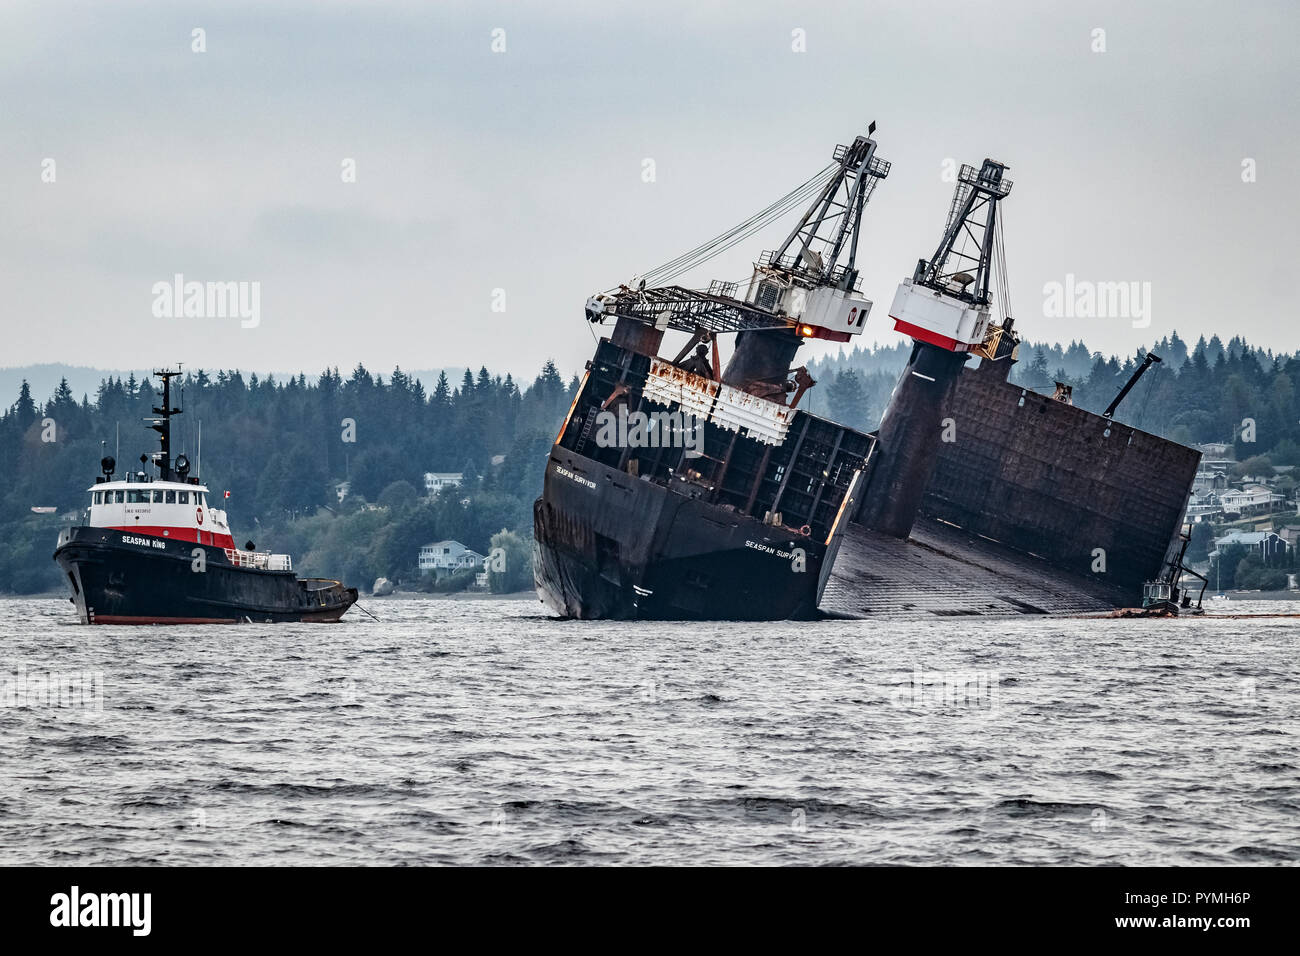 After dumping its load, the self-dumping log barge Seaspan Survivor lists to 20 degrees, flanked by a tug, the Seaspan King, and a tiny boom boat. - Stock Image